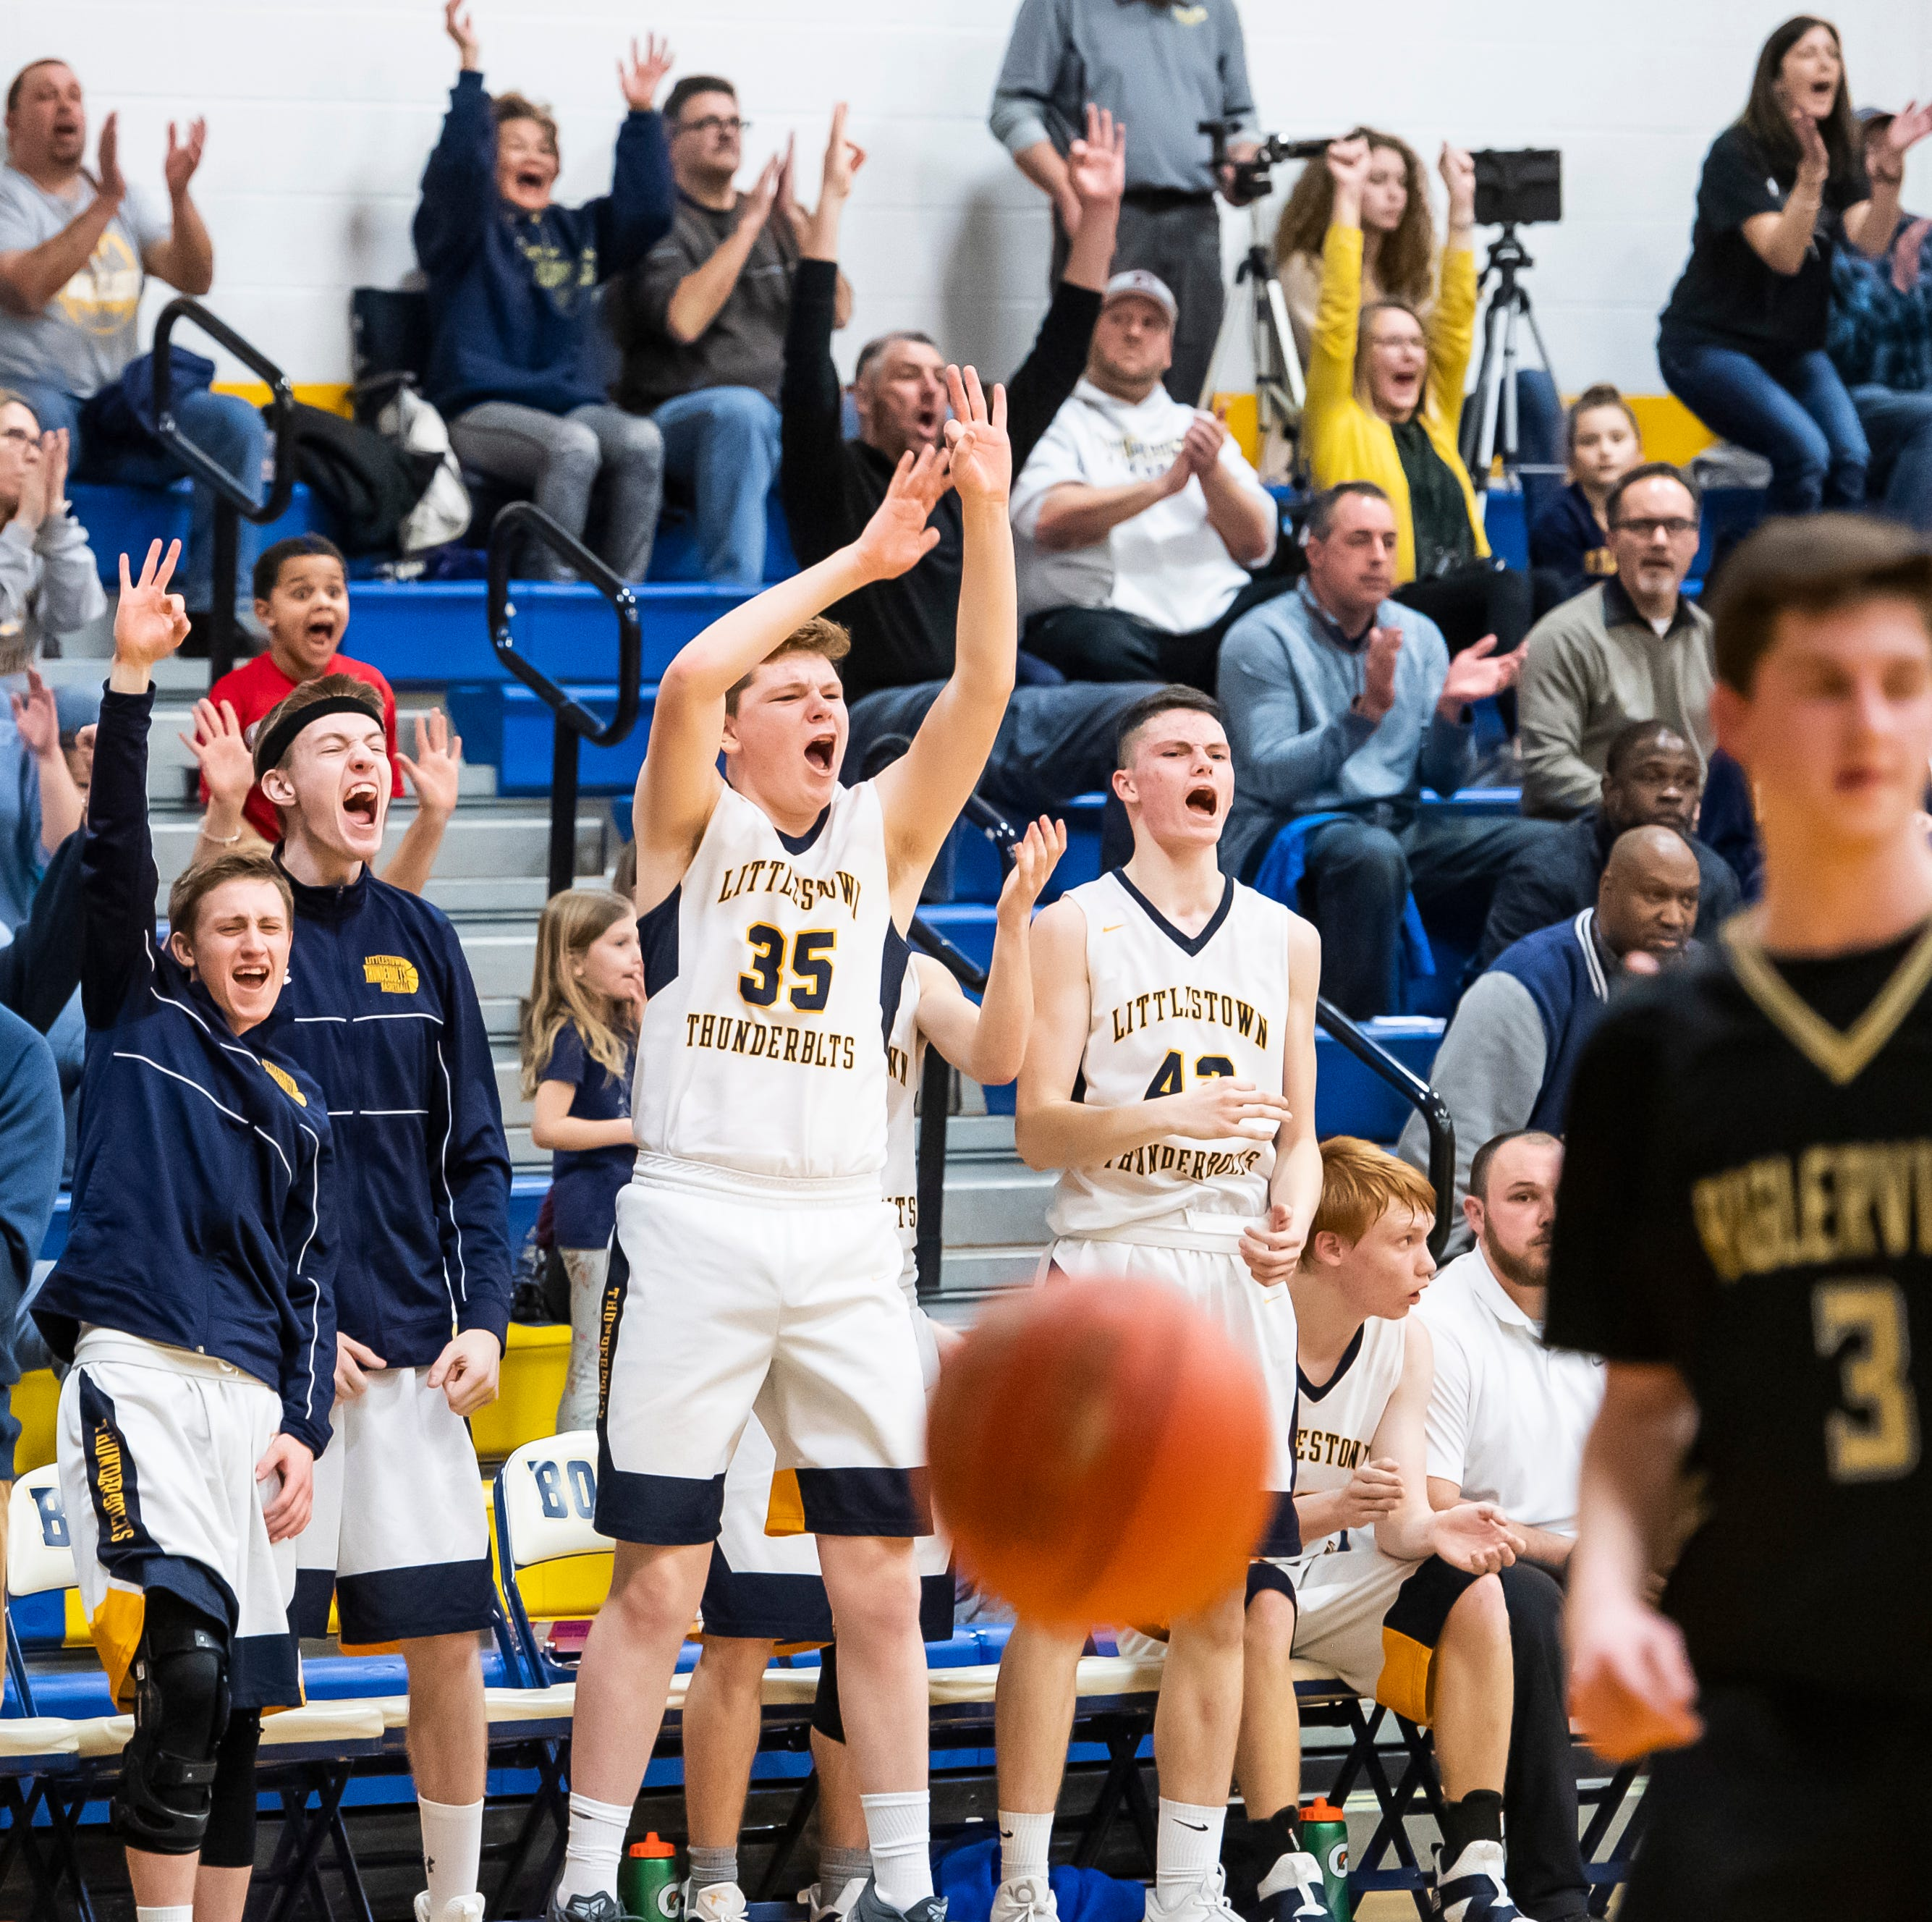 Littlestown boys' basketball team returns to PIAA tournament after 18 years